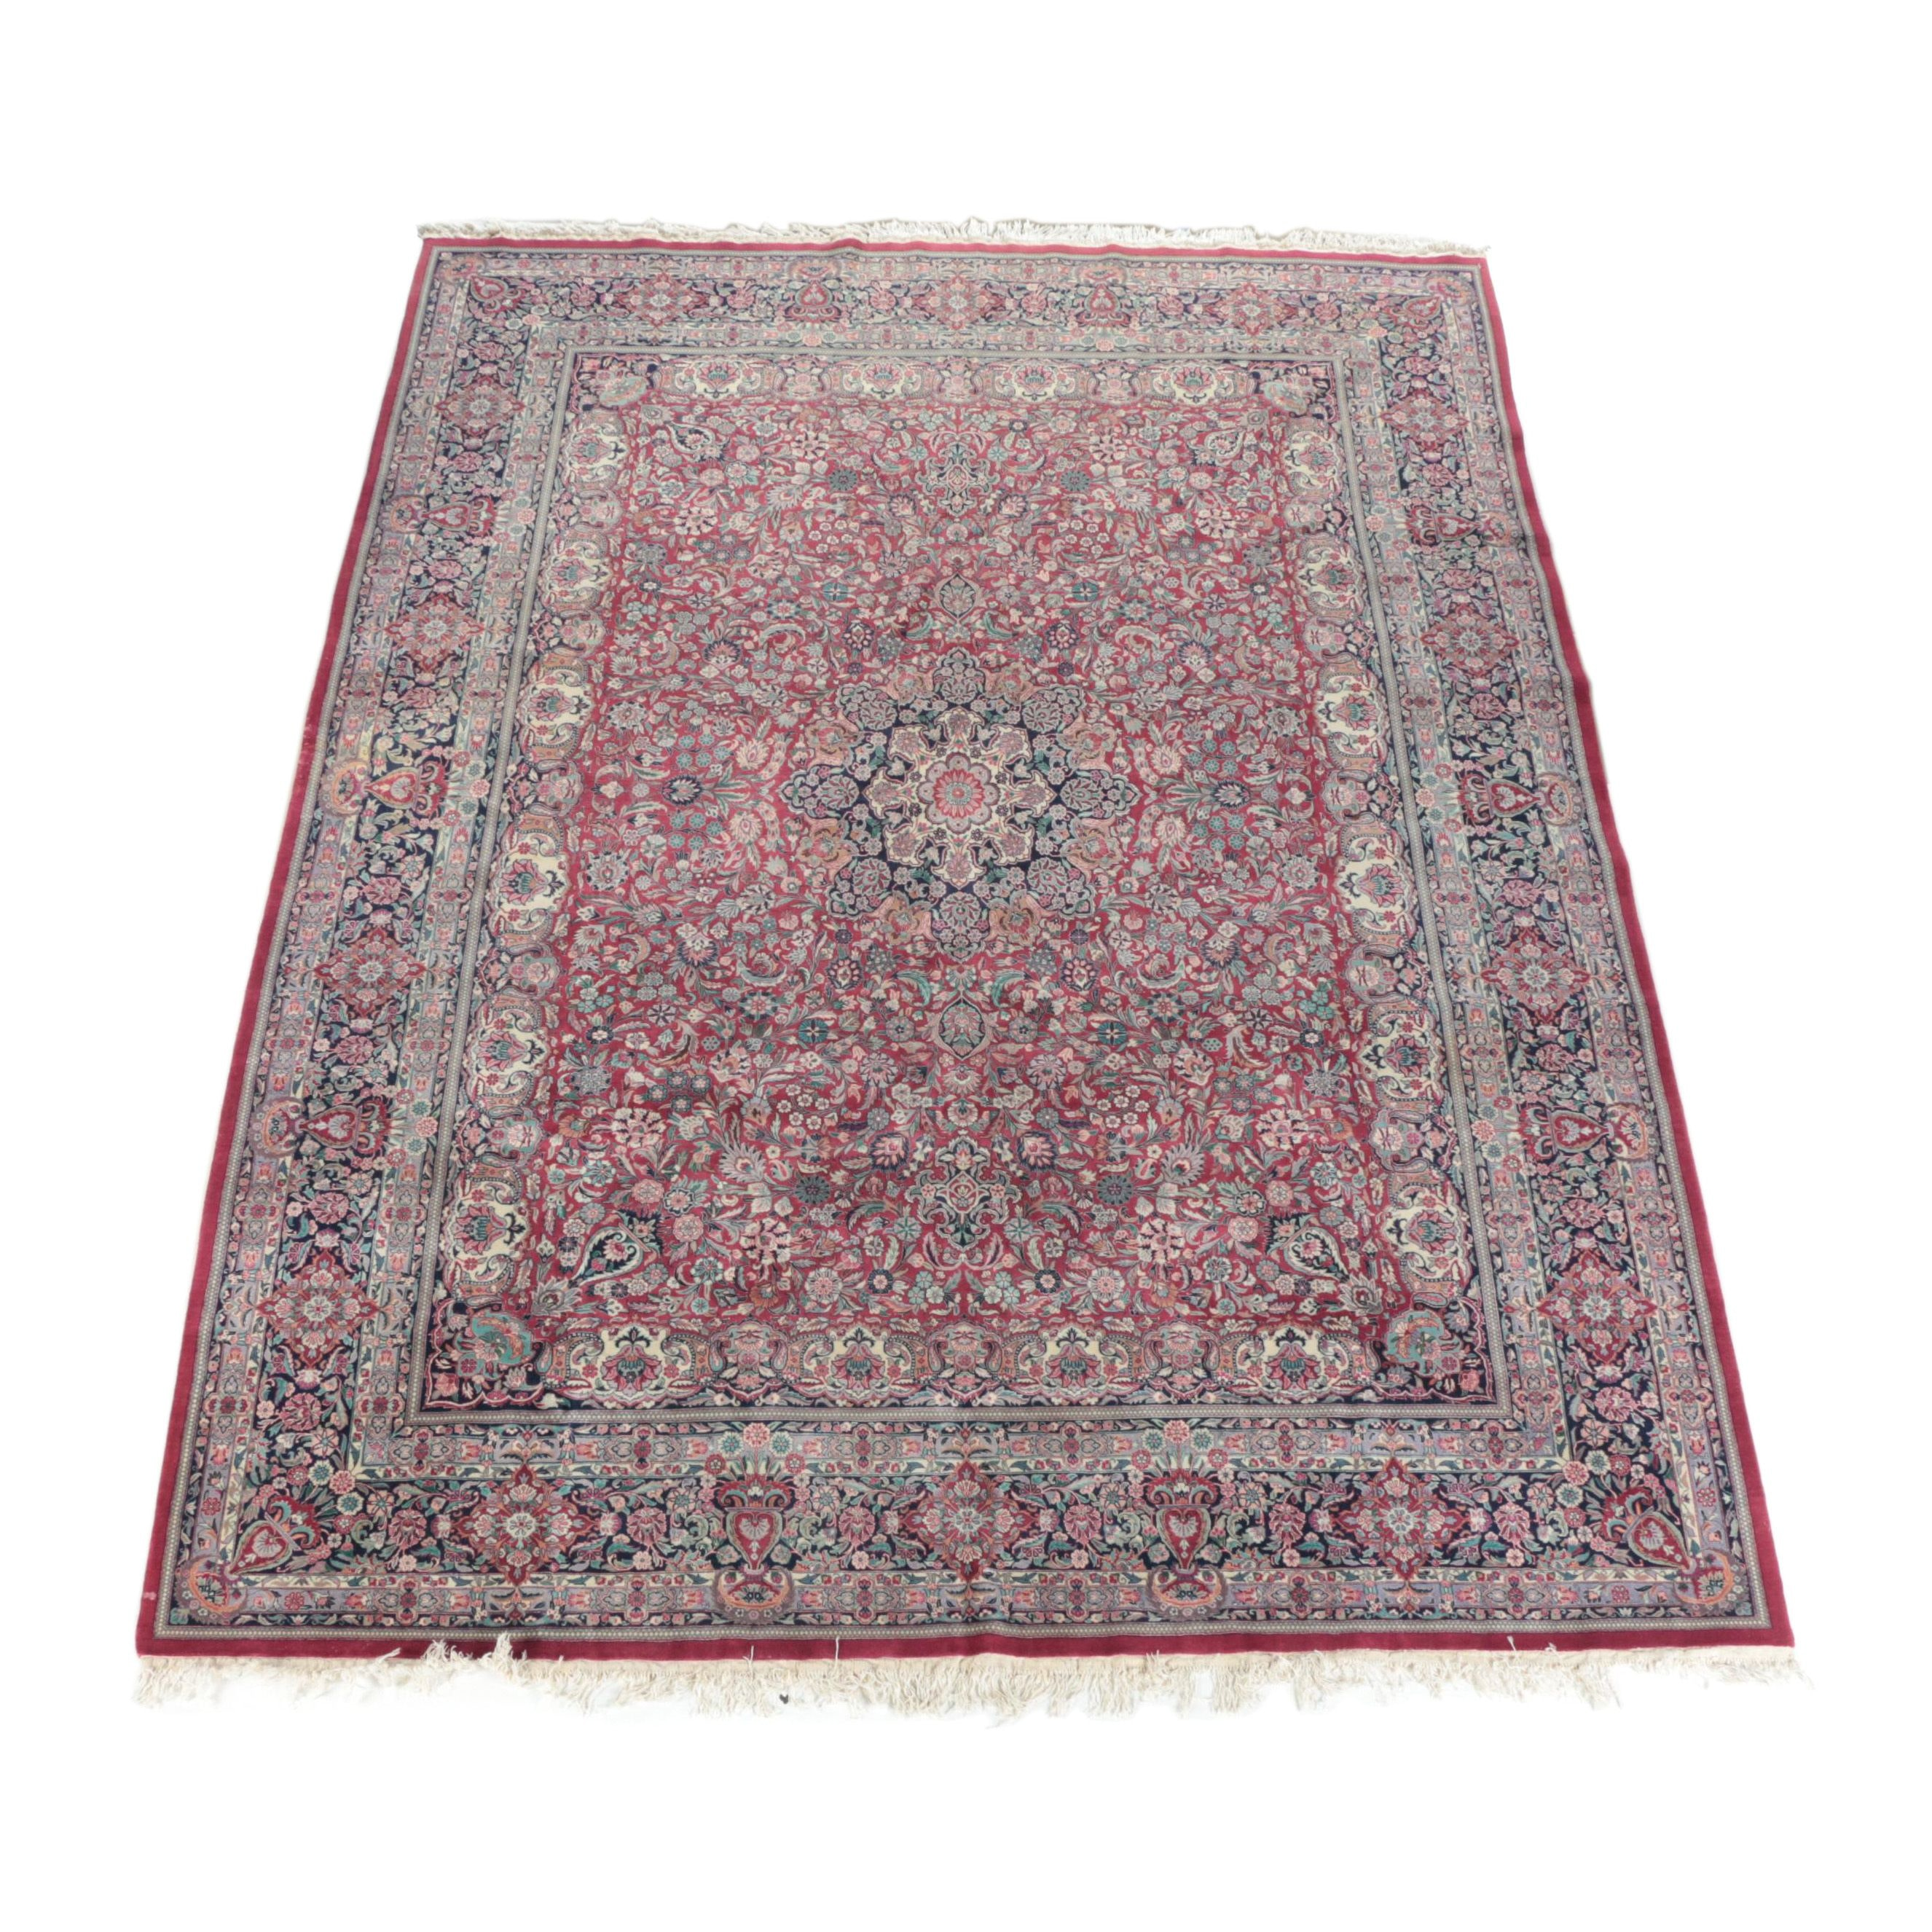 Finely Hand-Knotted Turkish Hereke Silk Blend Room Size Rug